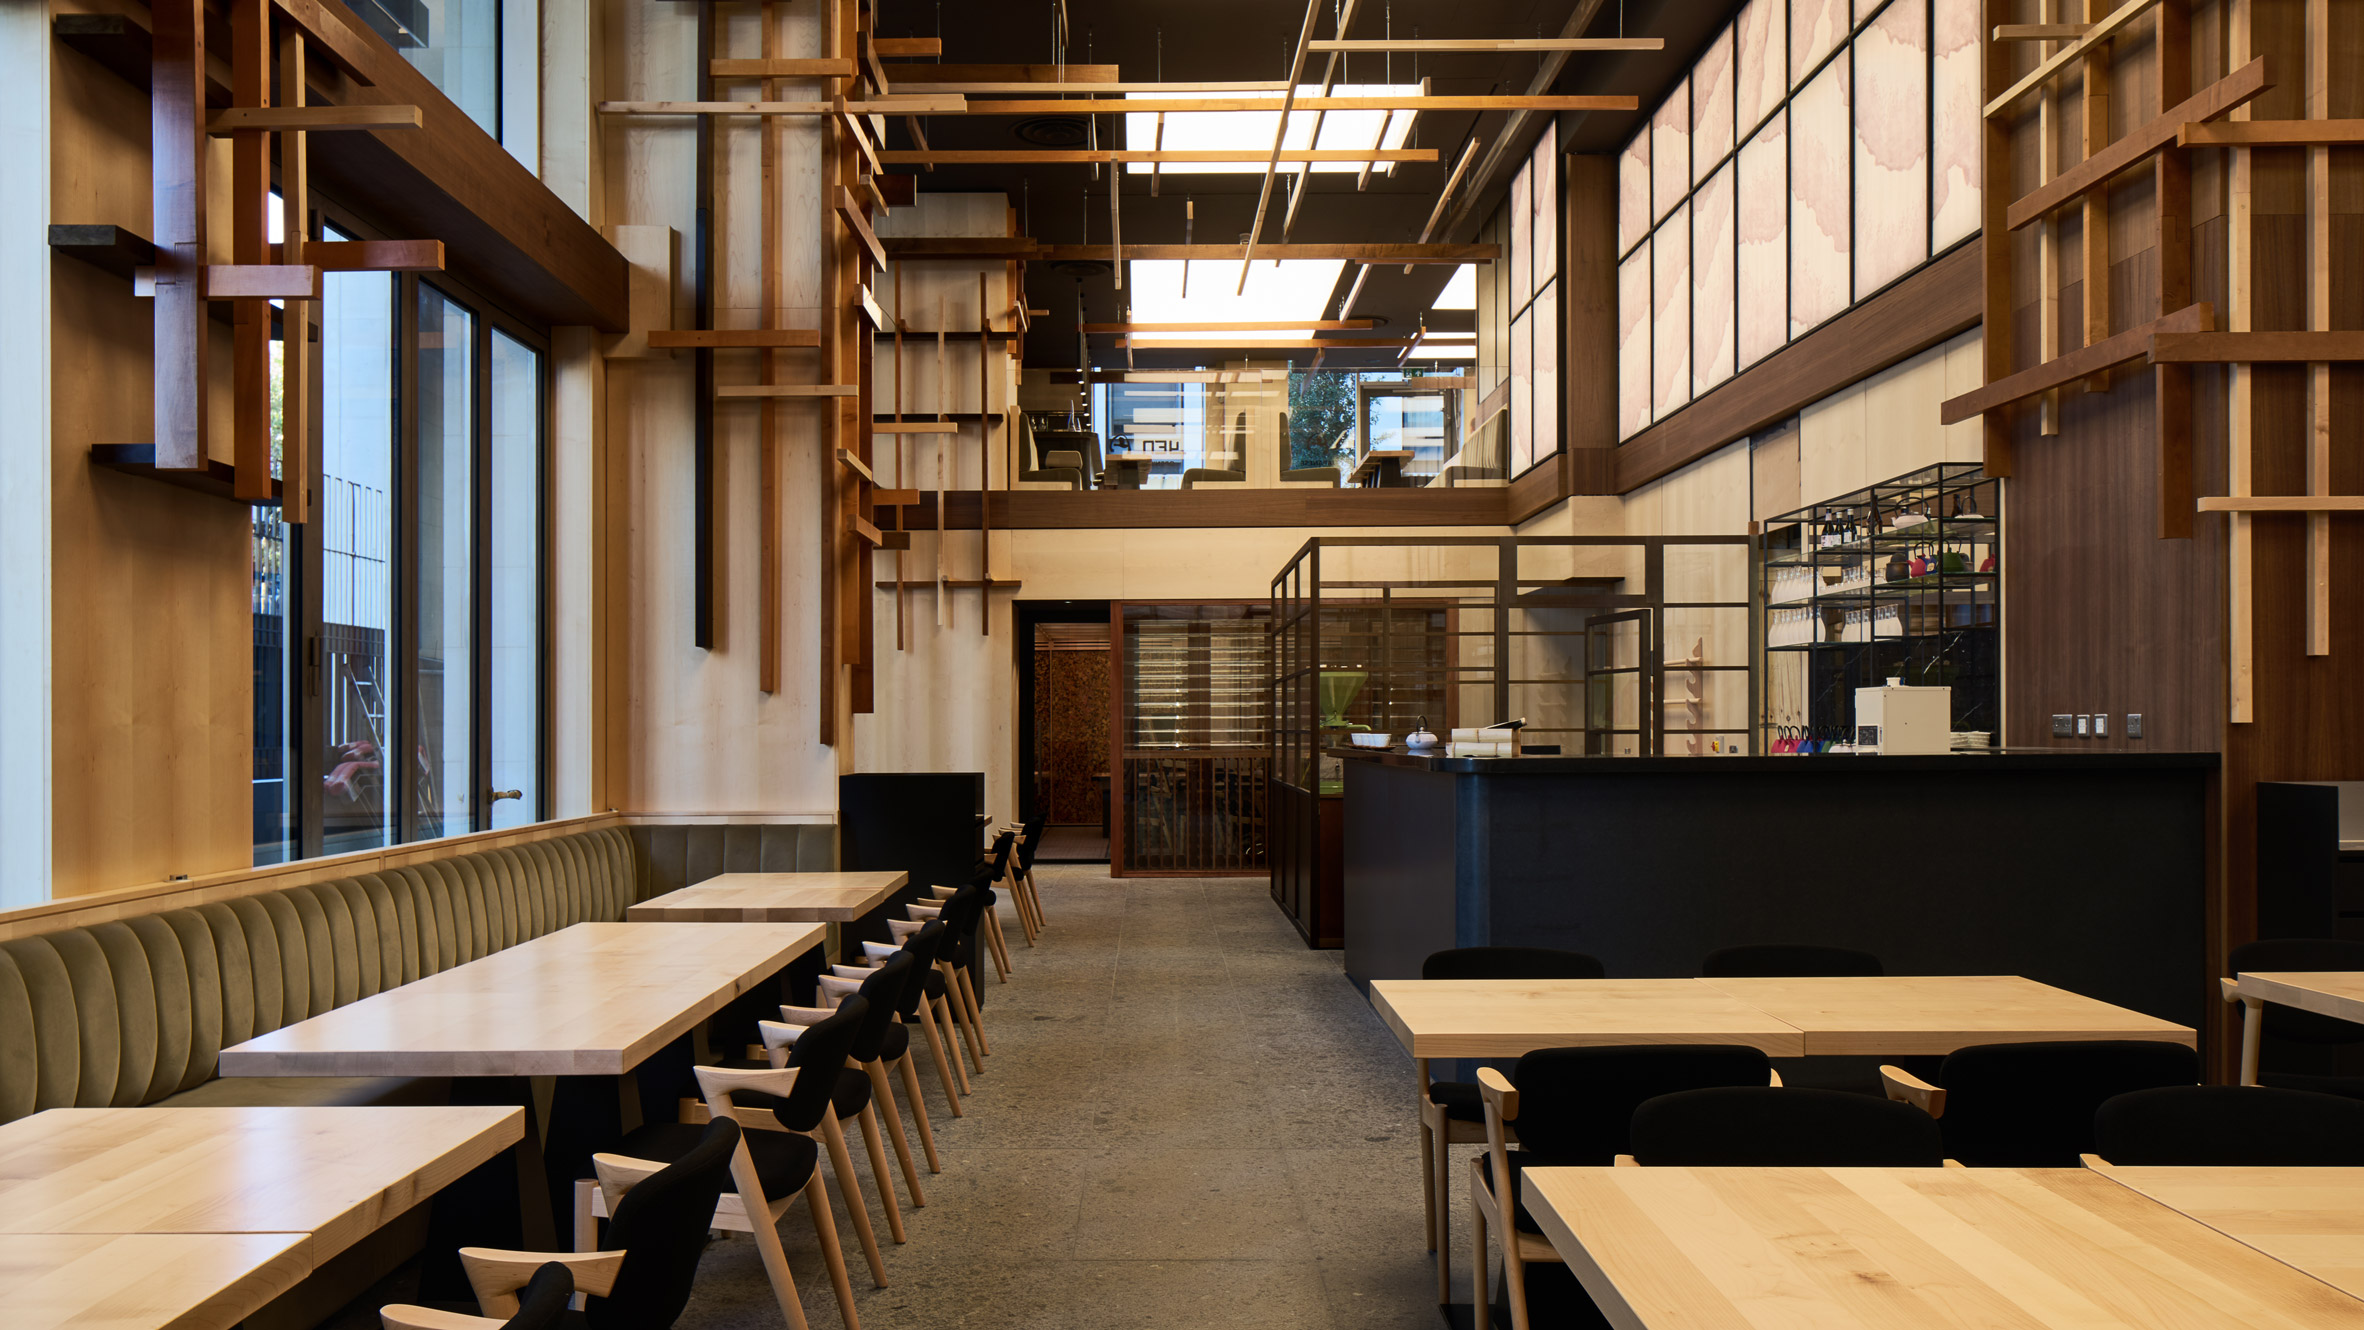 sybarite bases japanese restaurant interior on bamboo forests rh dezeen com  wooden restaurant interior design